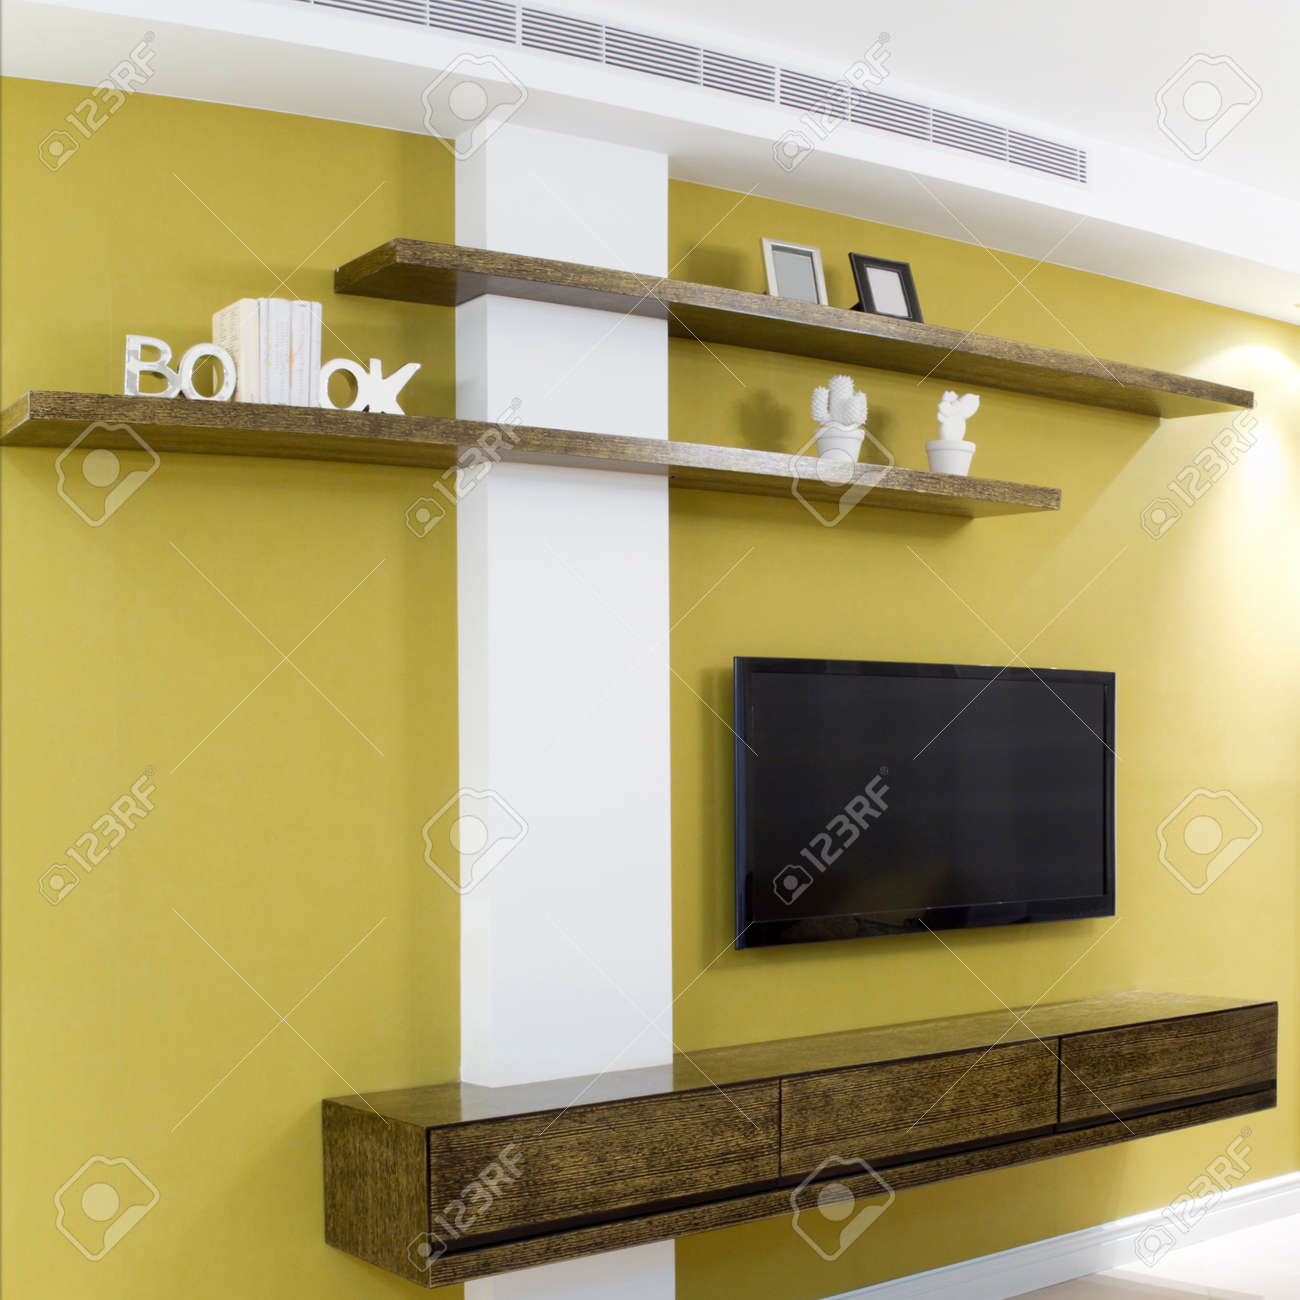 Interior design in a new house. Stock Photo - 14122194